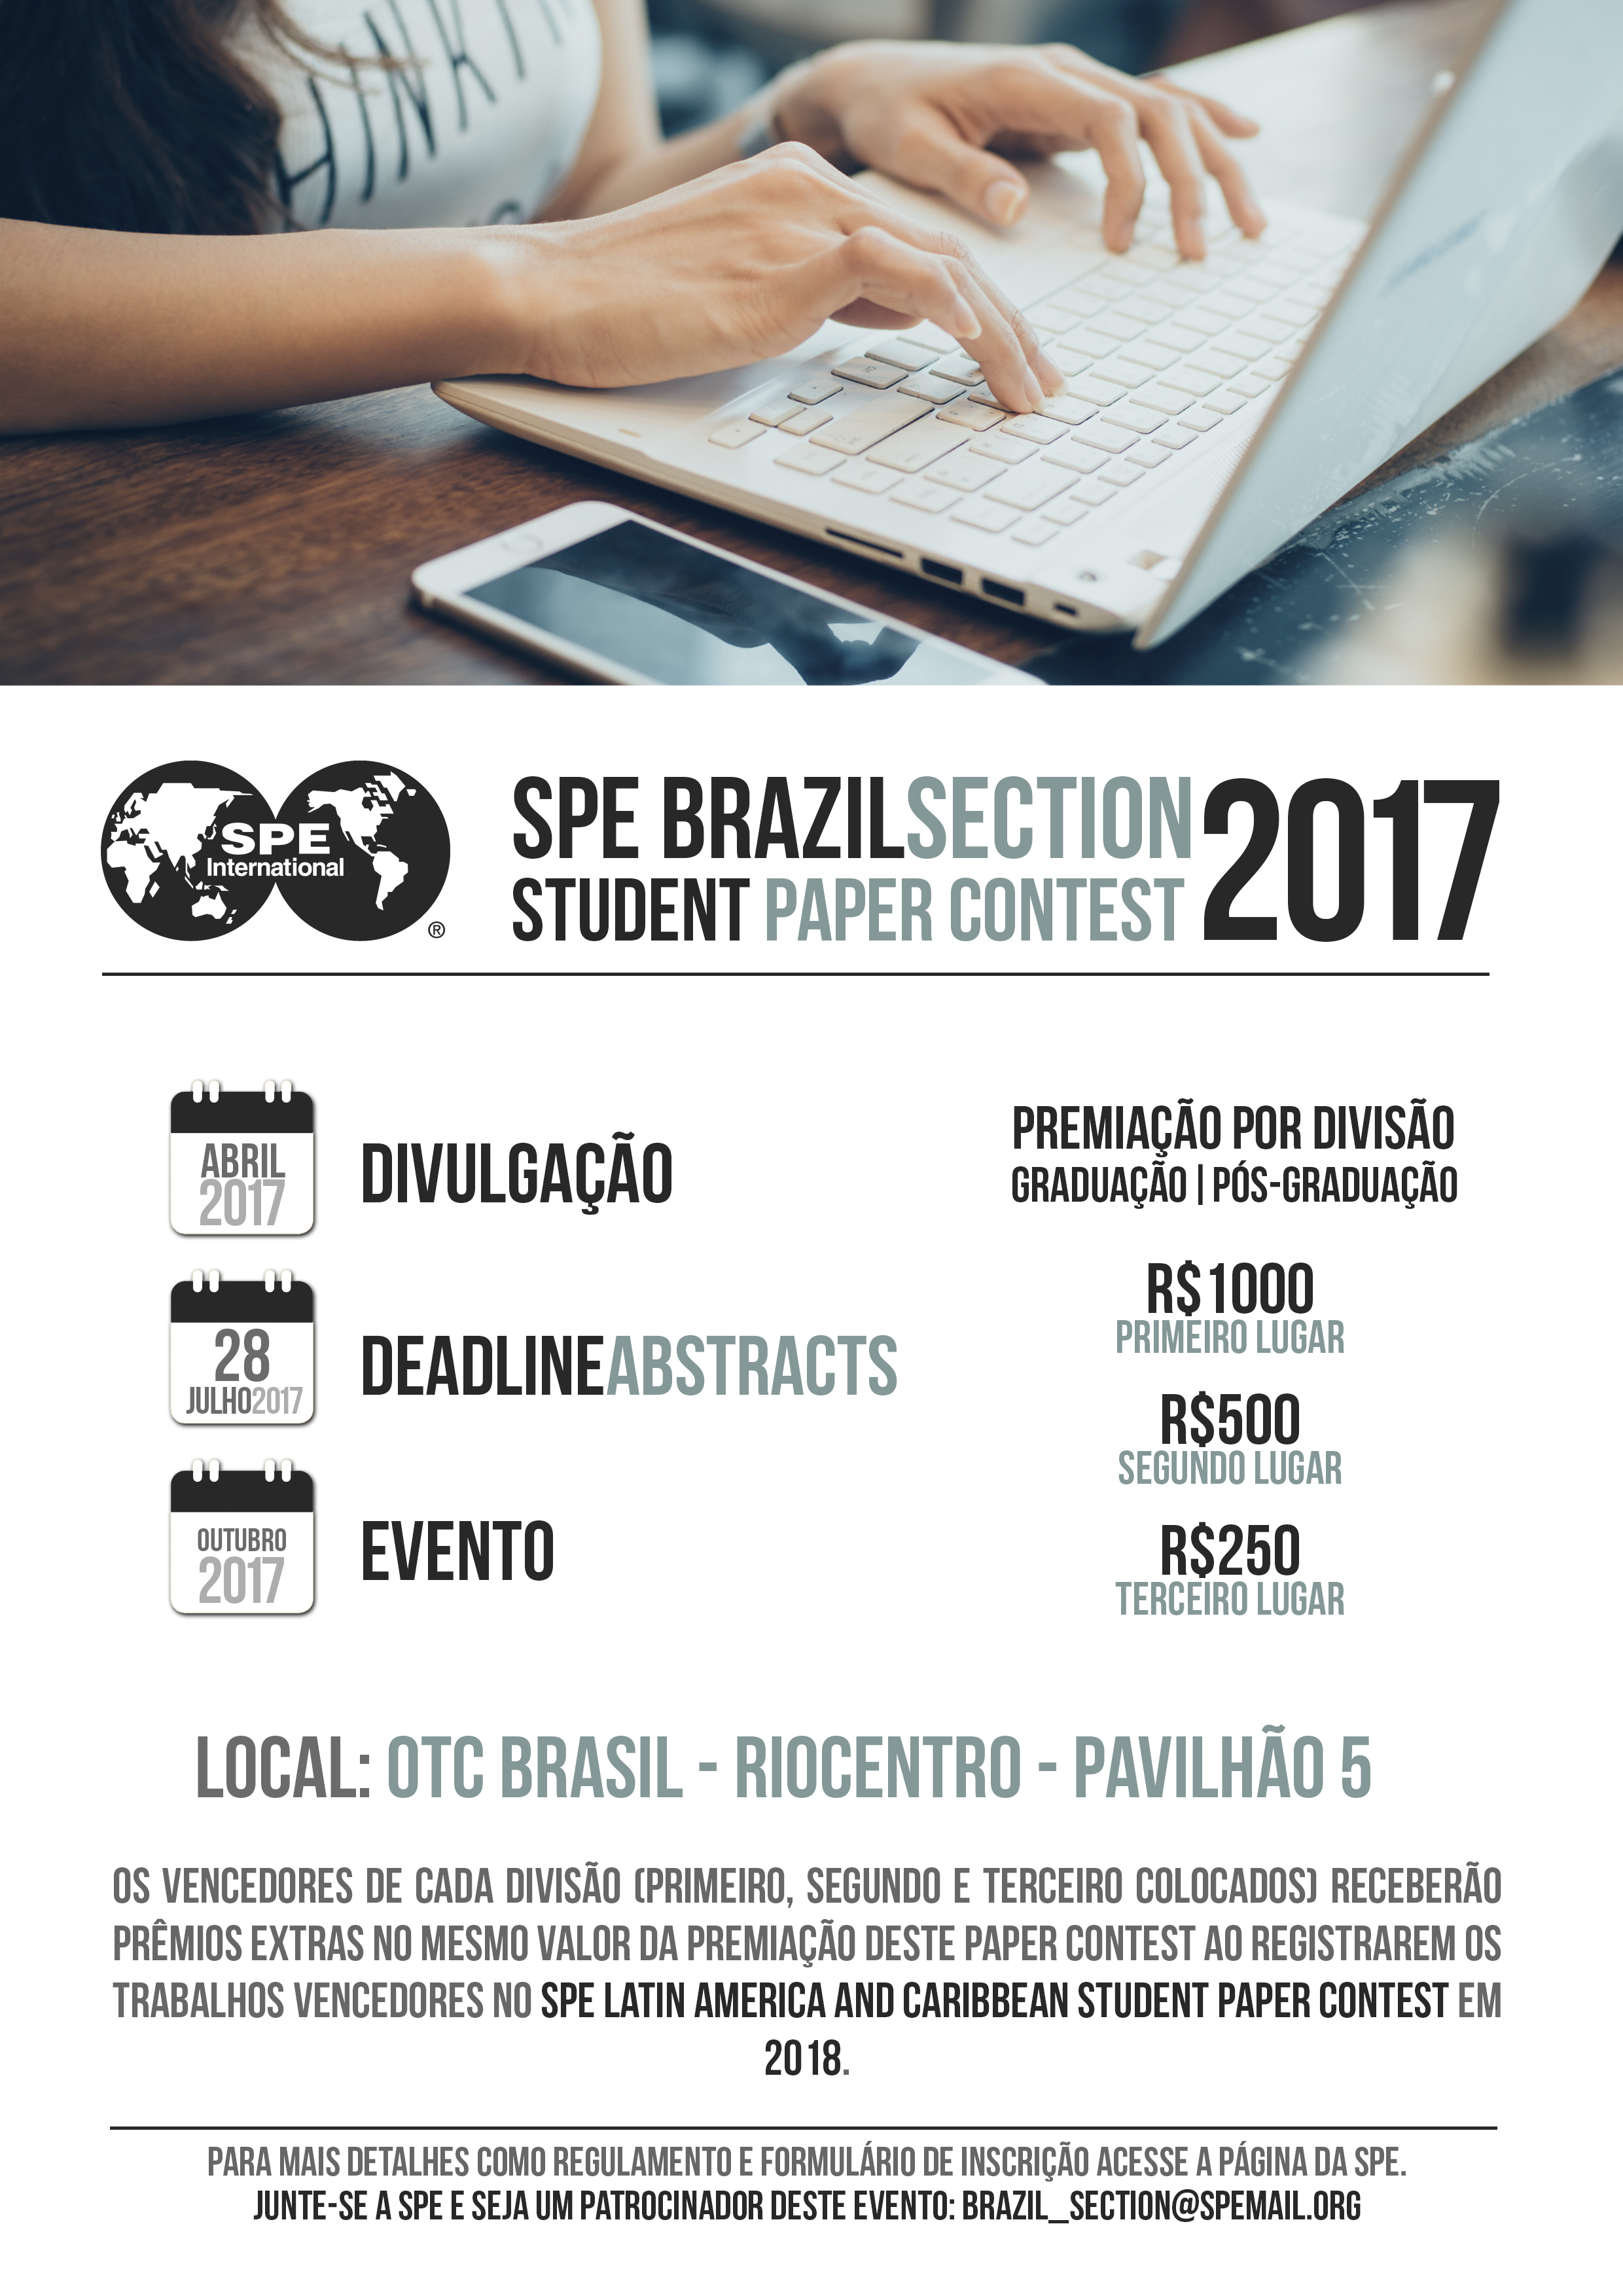 SPE BRAZIL SECTION STUDENT PAPER CONTEST 2017